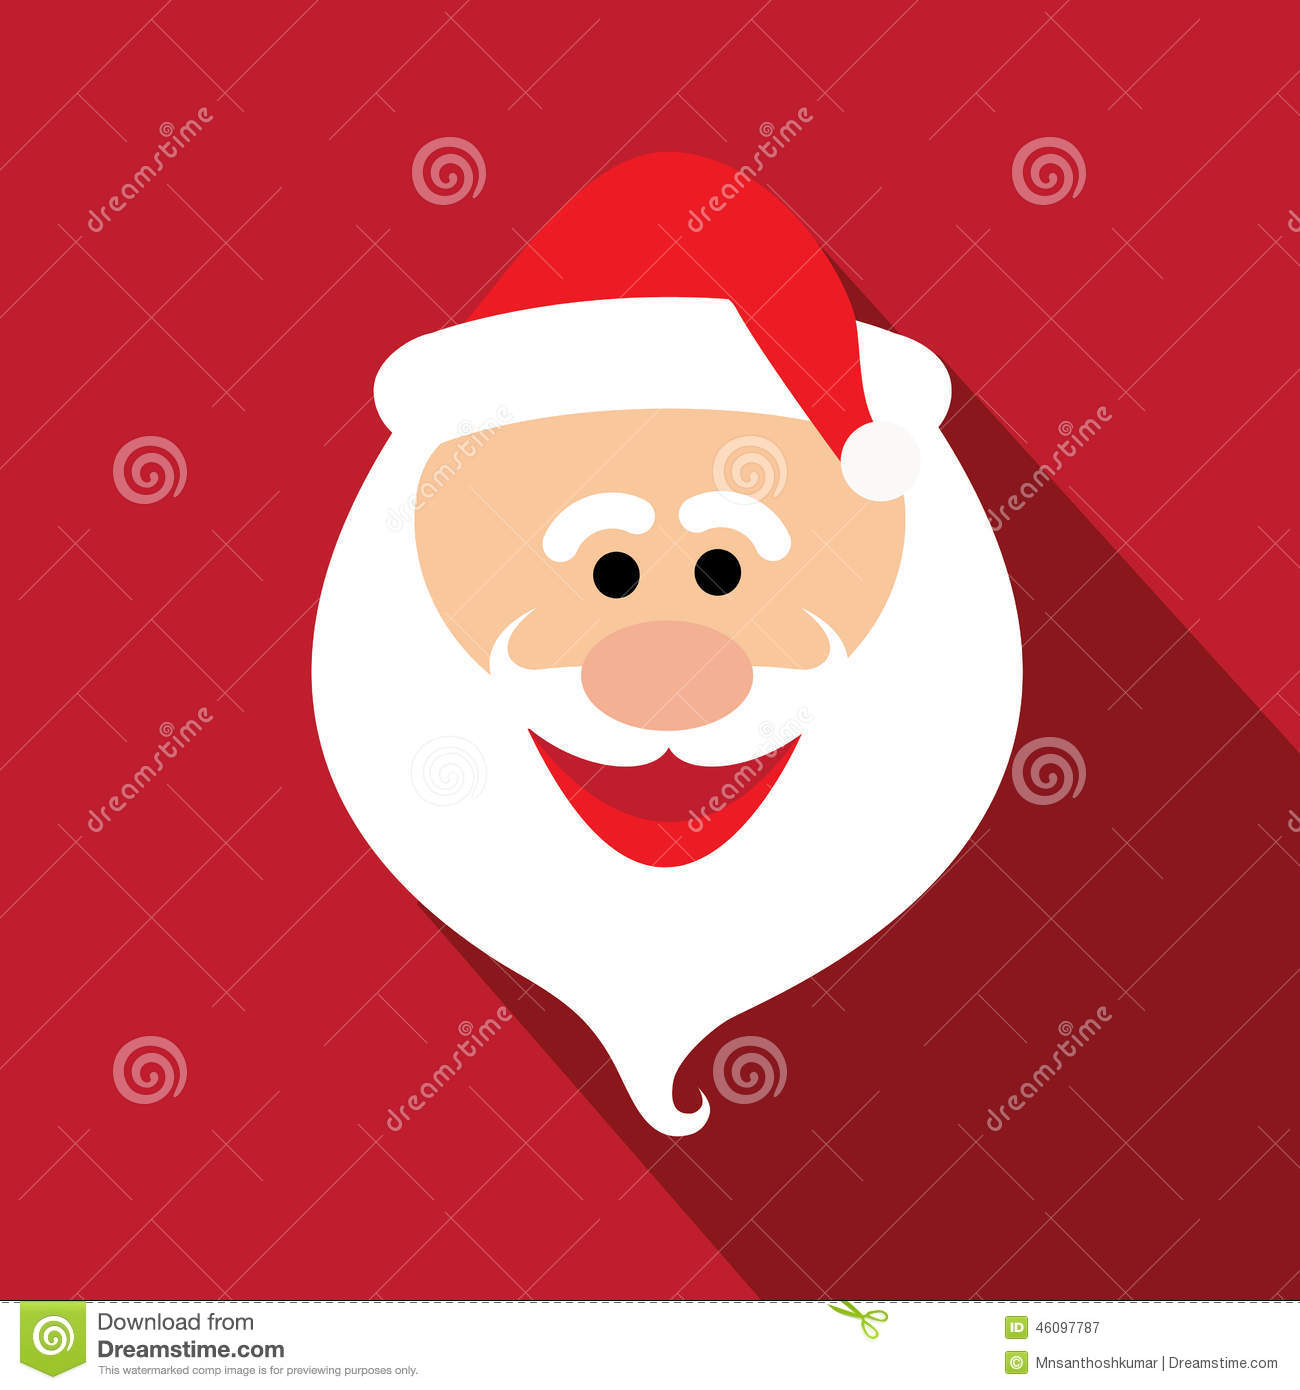 flat design santa claus face with happy and funny emotions - vector graphic design